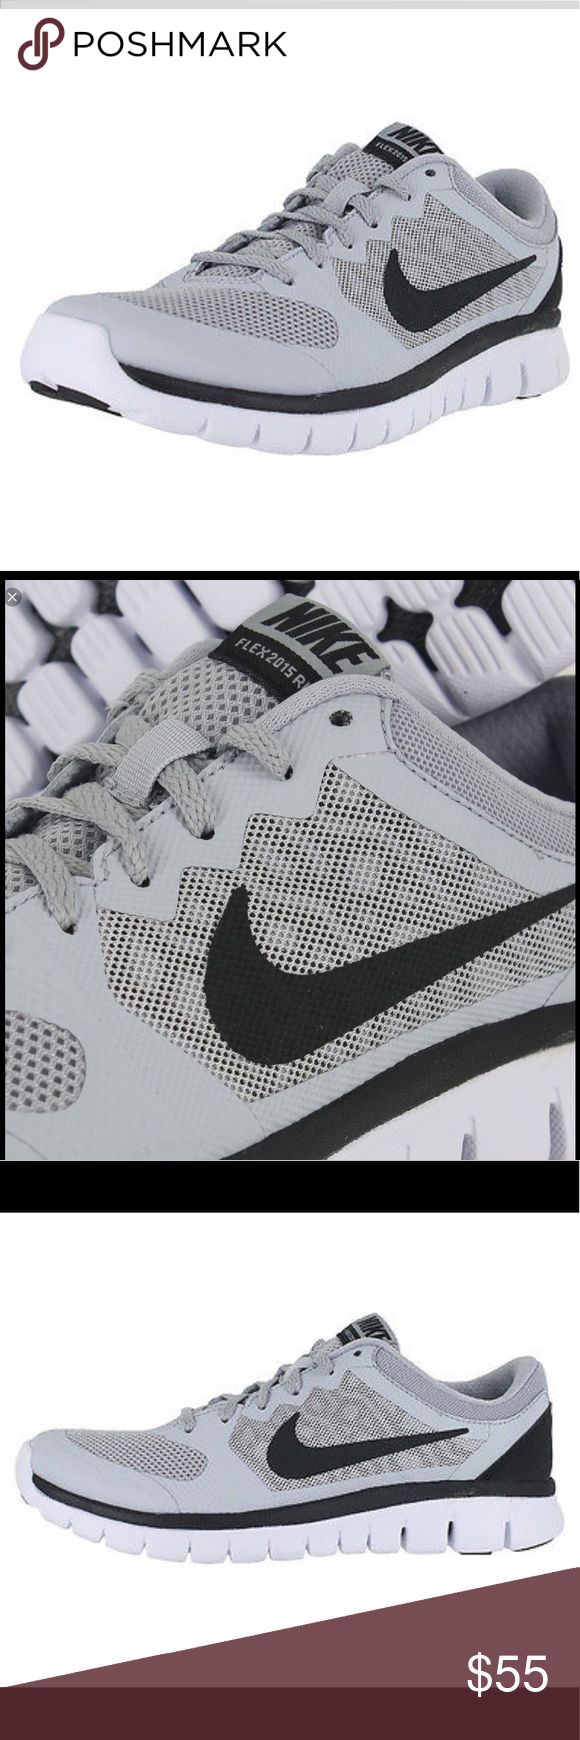 💥Nike Flex 2015 Run GS Youth Boy Running Shoes💥 A direct take-down of the bigger guys, the Nike® Kids Flex 2015 Run will cradle their feet  through every gait! A neutral running shoe. Breathe Tech upper design fuses foam and mesh for enhanced ventilation with  lightweight support. Lace-up closure for snug fit. Breathable and lightweight mesh and synthetic upper materials. Minimal, no-sew overlays provide irritation-free wear. Asymmetrical mid-foot design keeps the foot locked into place…